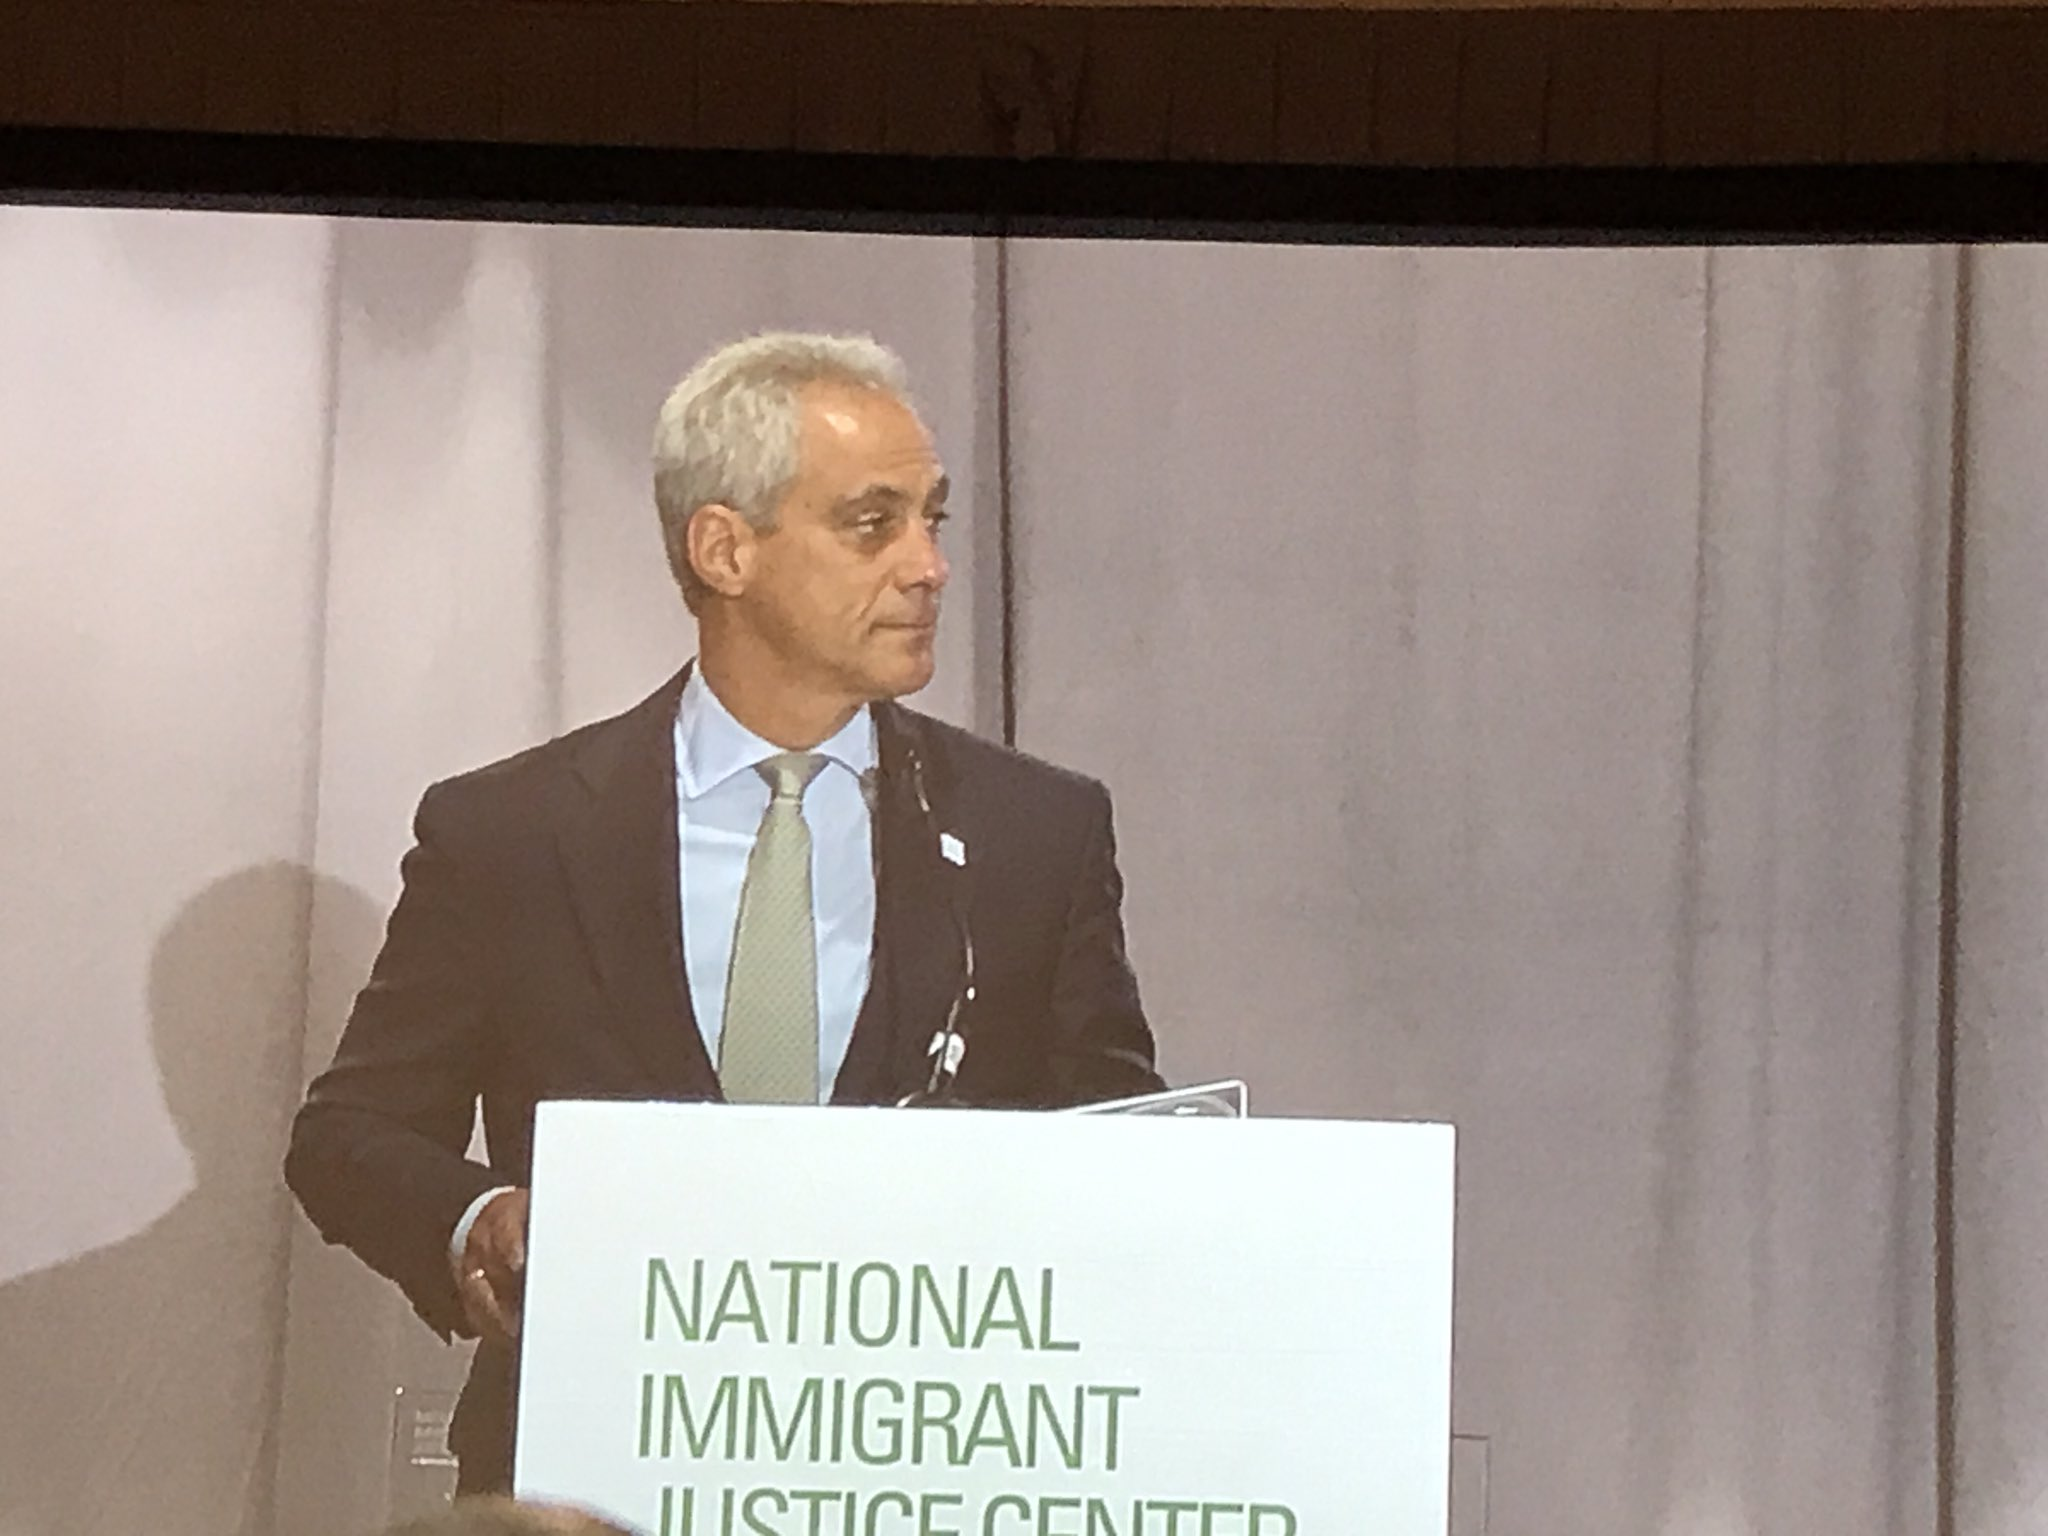 Great @NIJC #humanrightsawards, an impassioned speech from Mayor @RahmEmanuel on his family and the need to be inclusive #OneChicago https://t.co/c39OtsZvGH